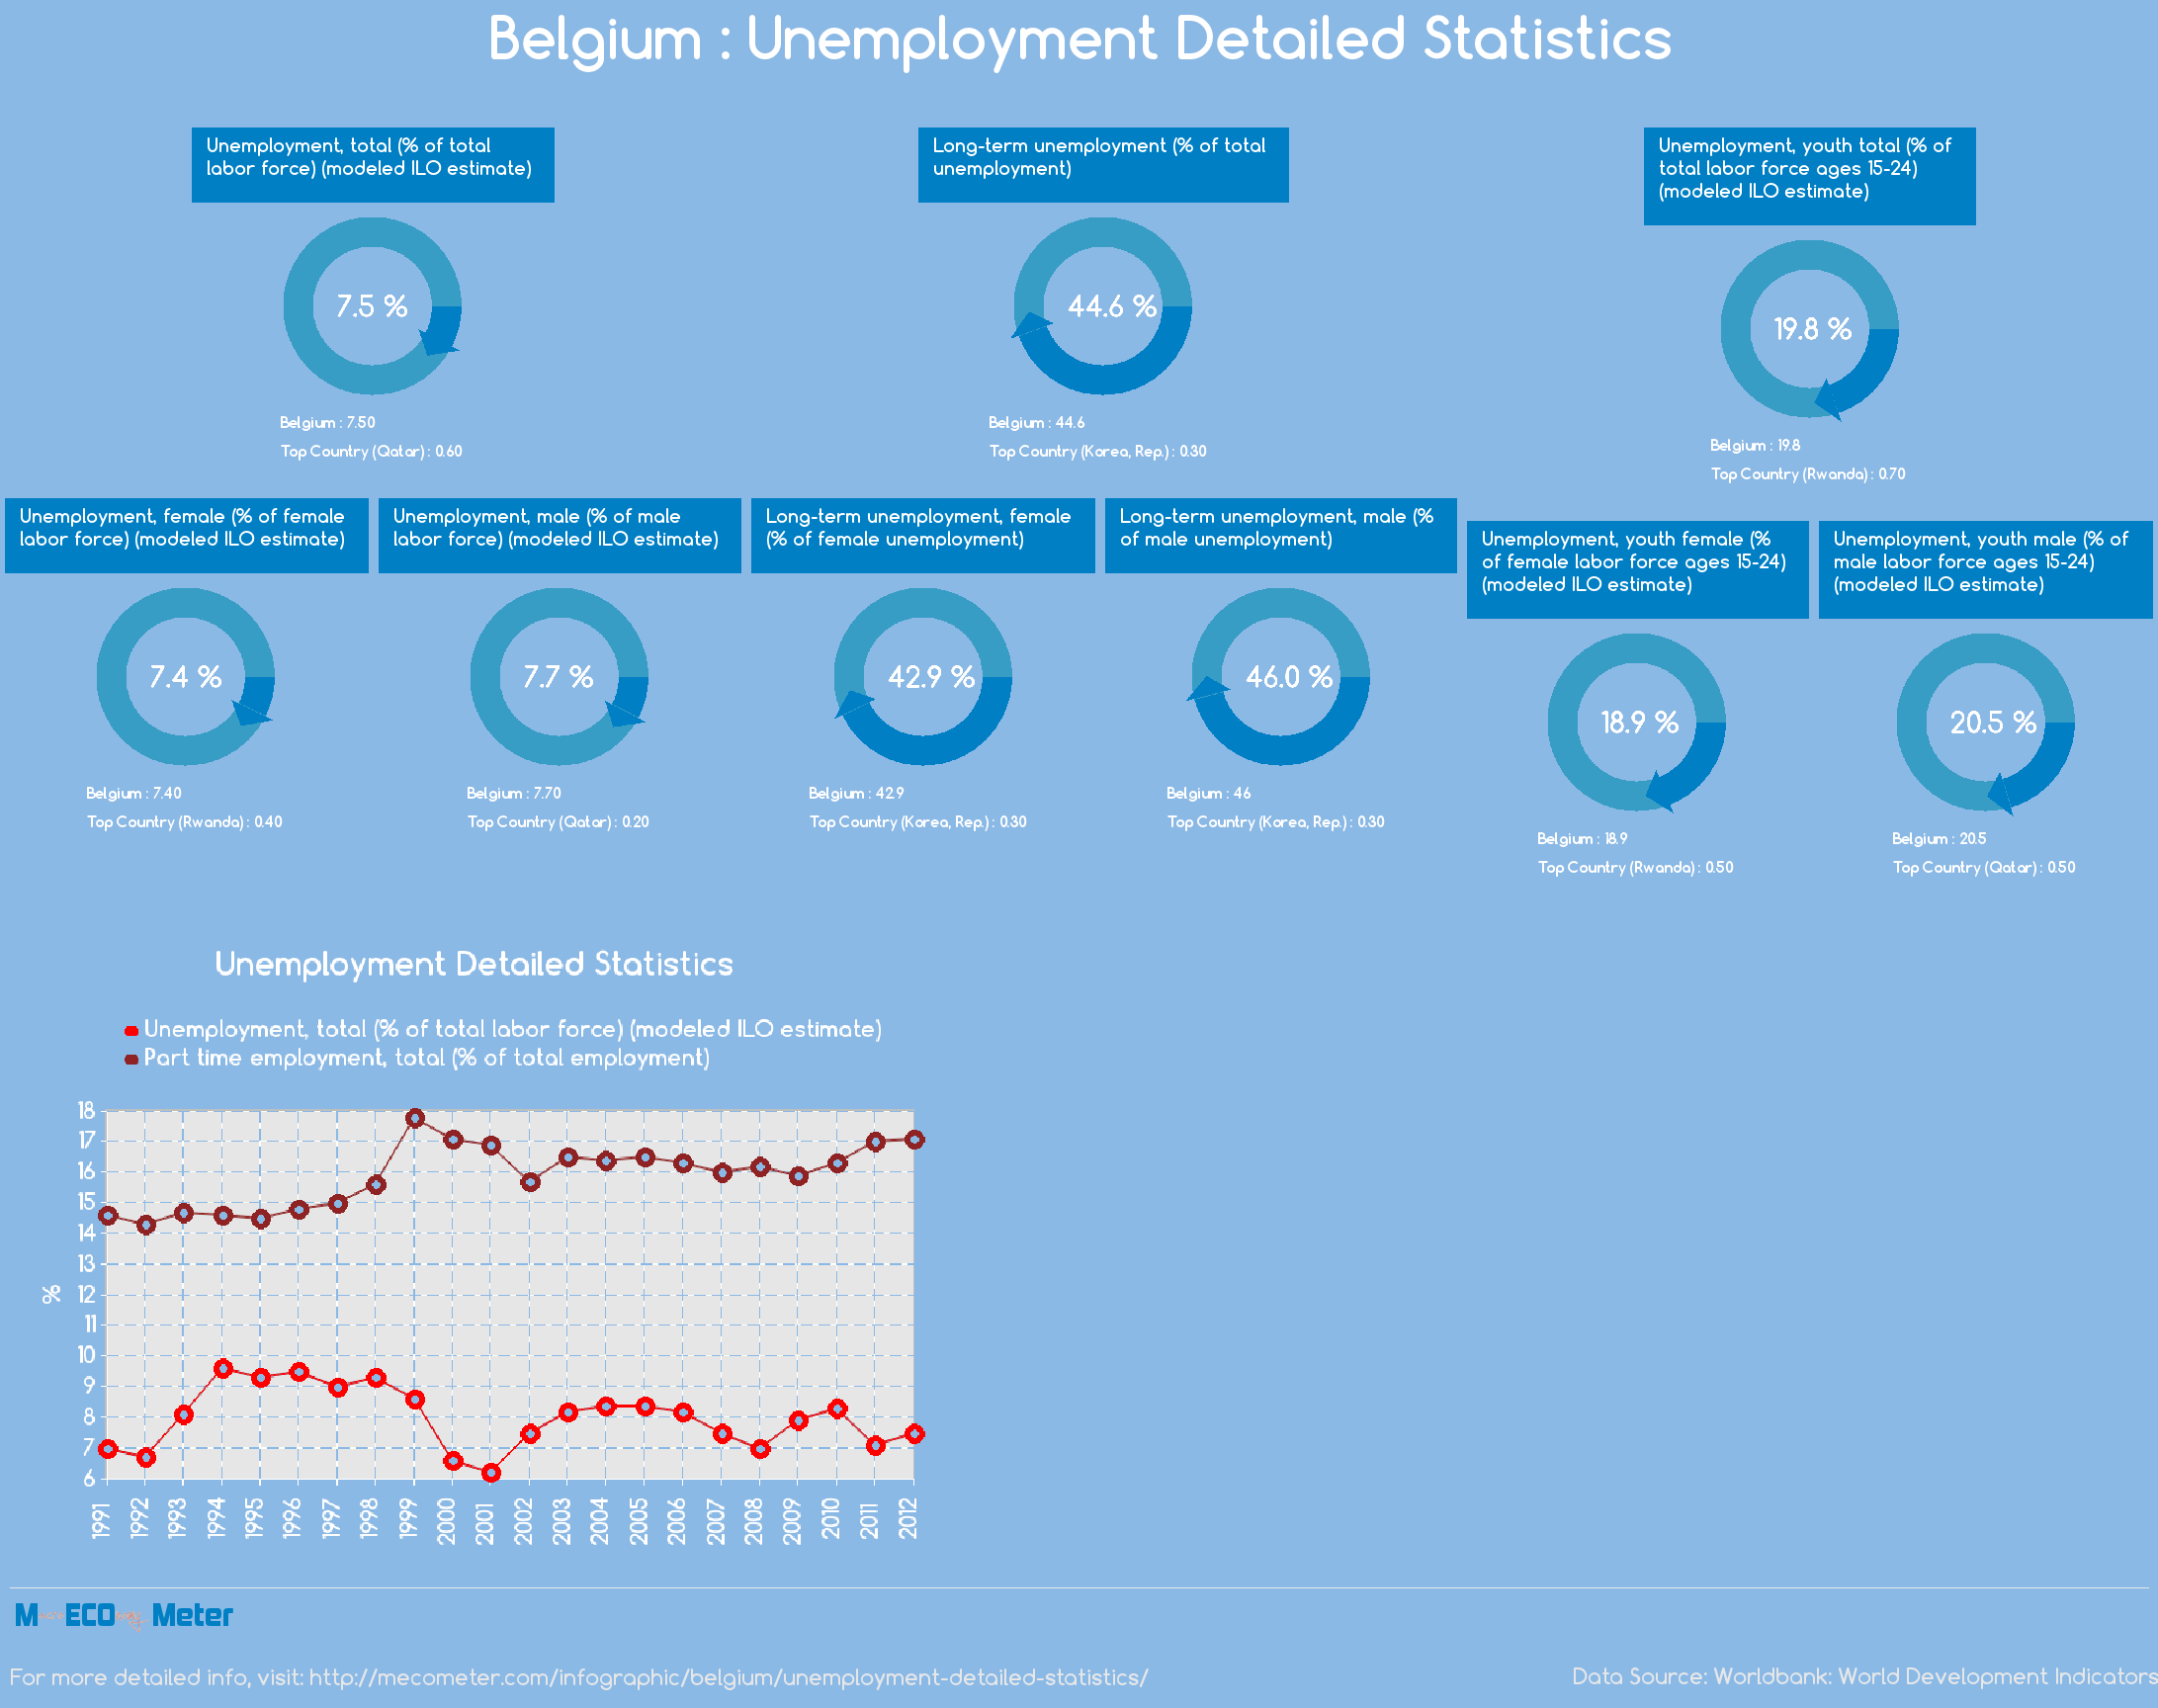 Belgium : Unemployment Detailed Statistics